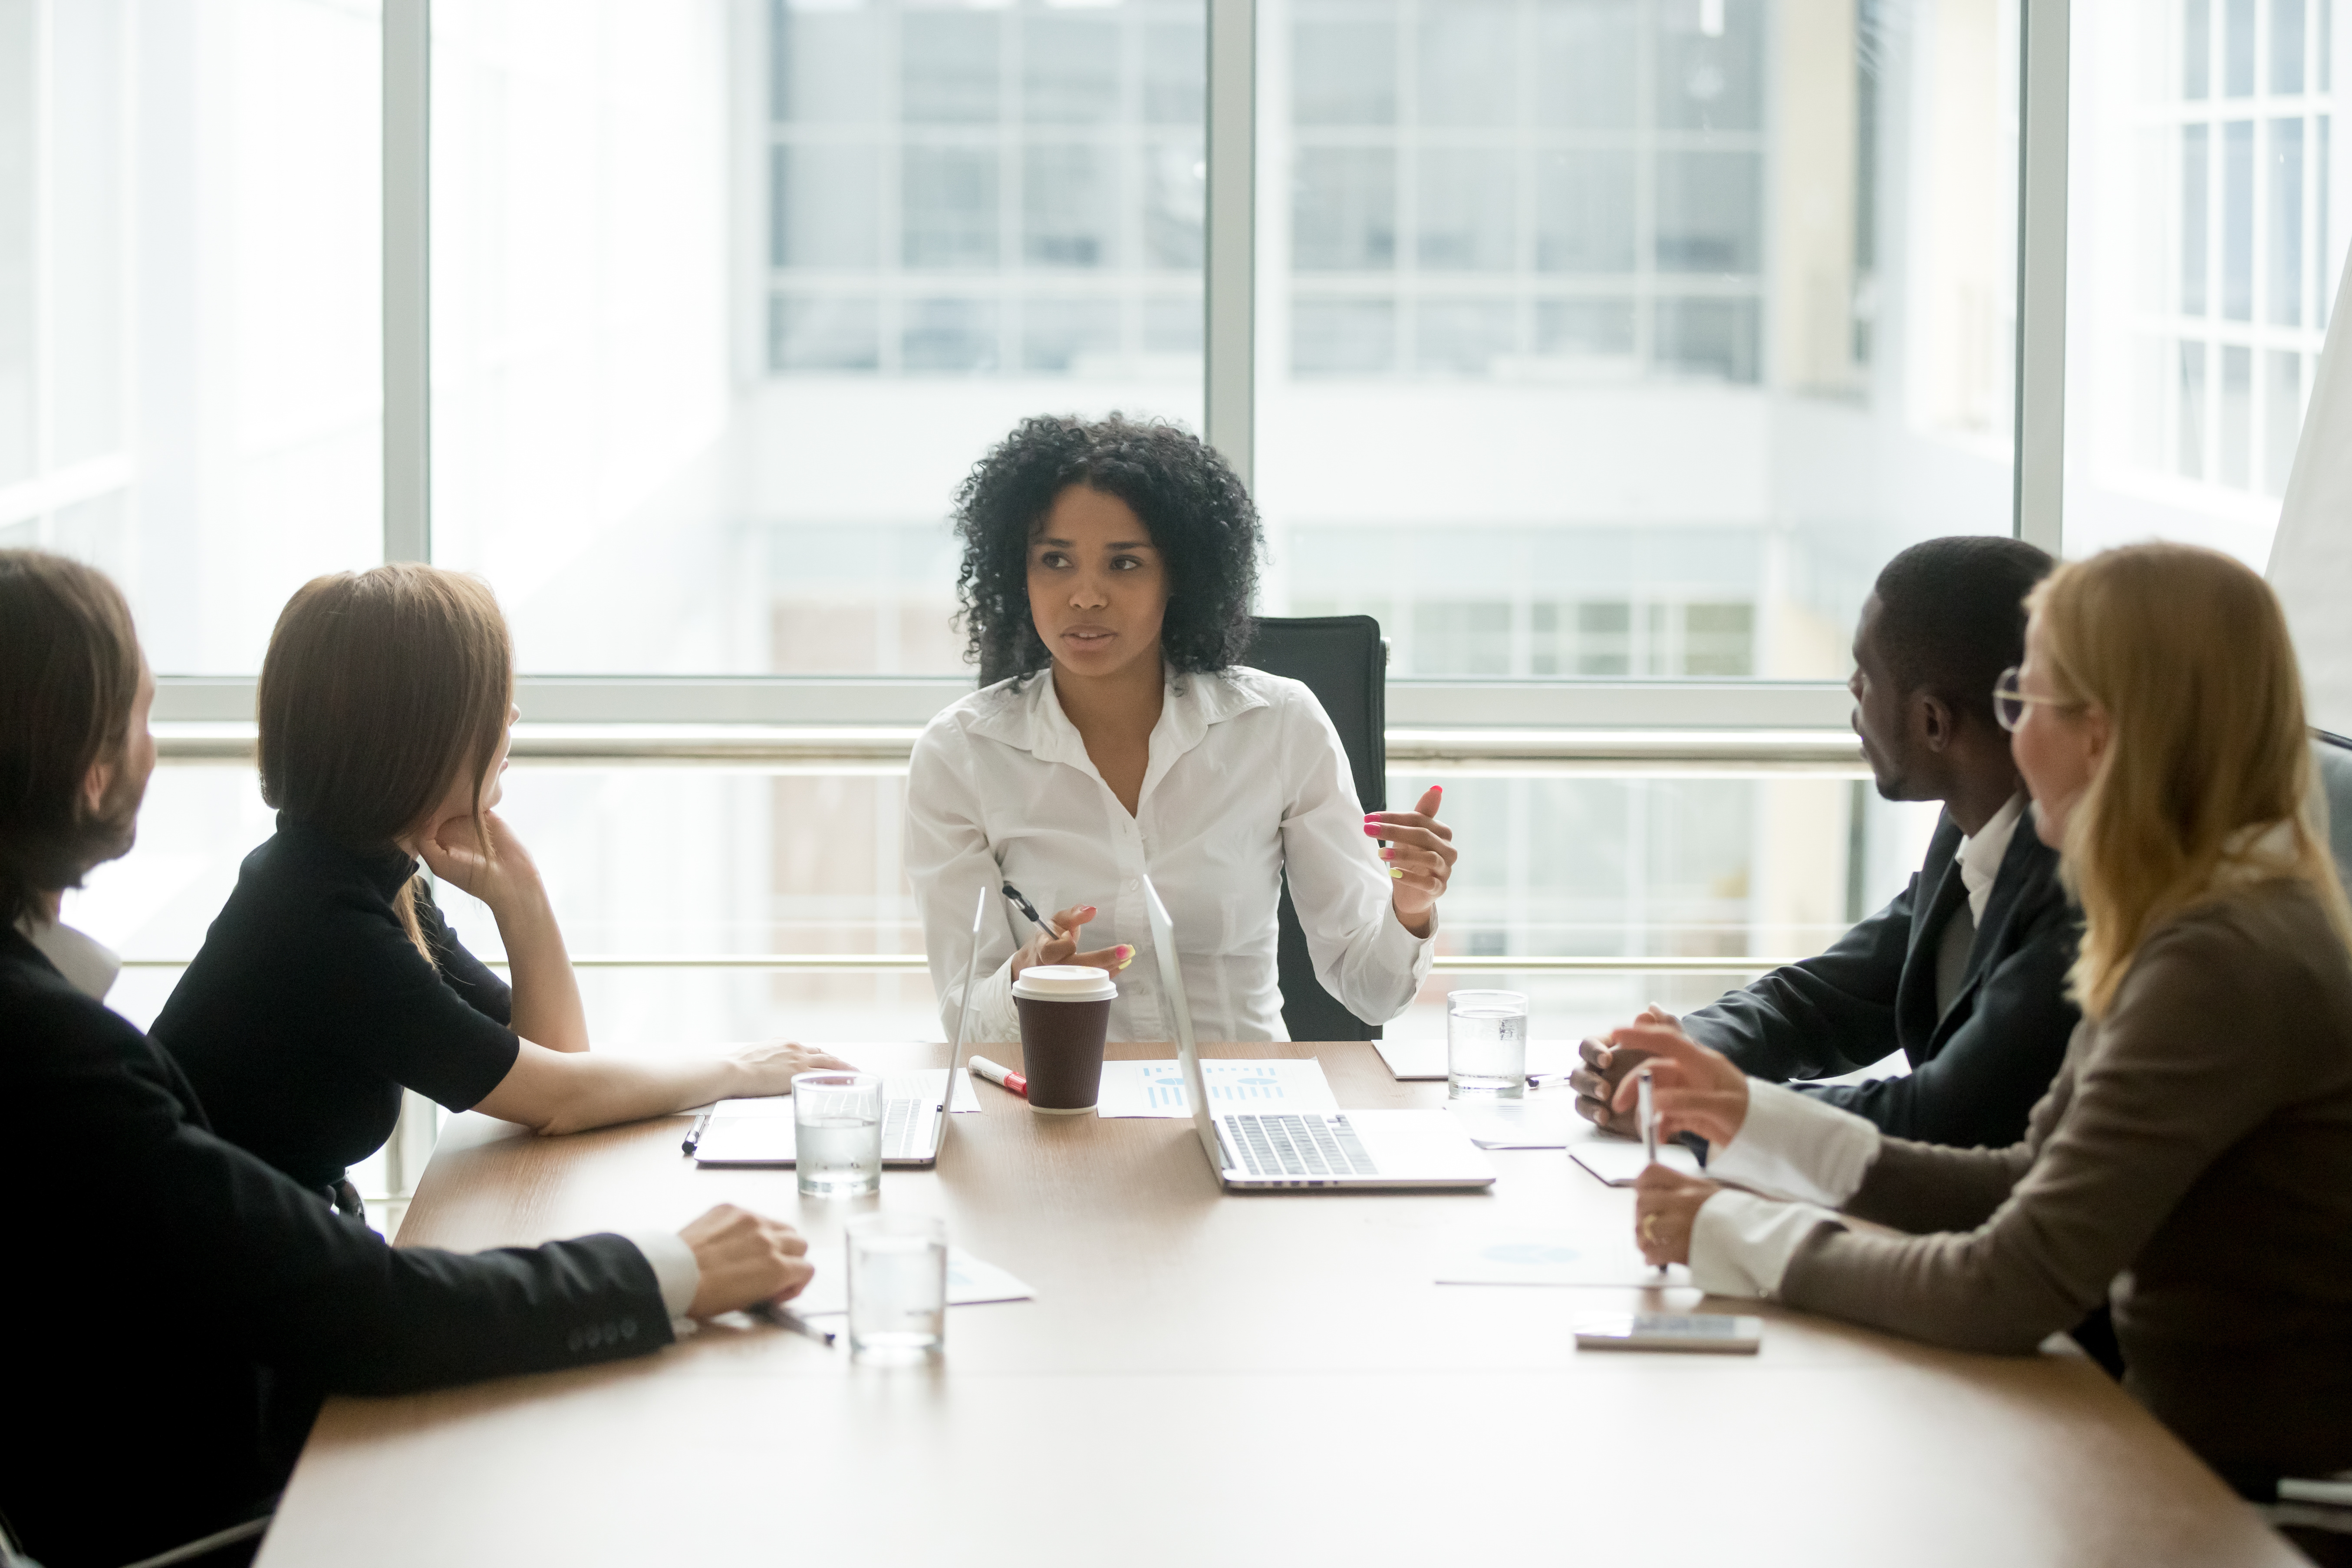 Black female boss leading corporate multiracial team meeting talking to diverse business people, african american woman executive discussing project plan at group multi-ethnic briefing in boardroom.